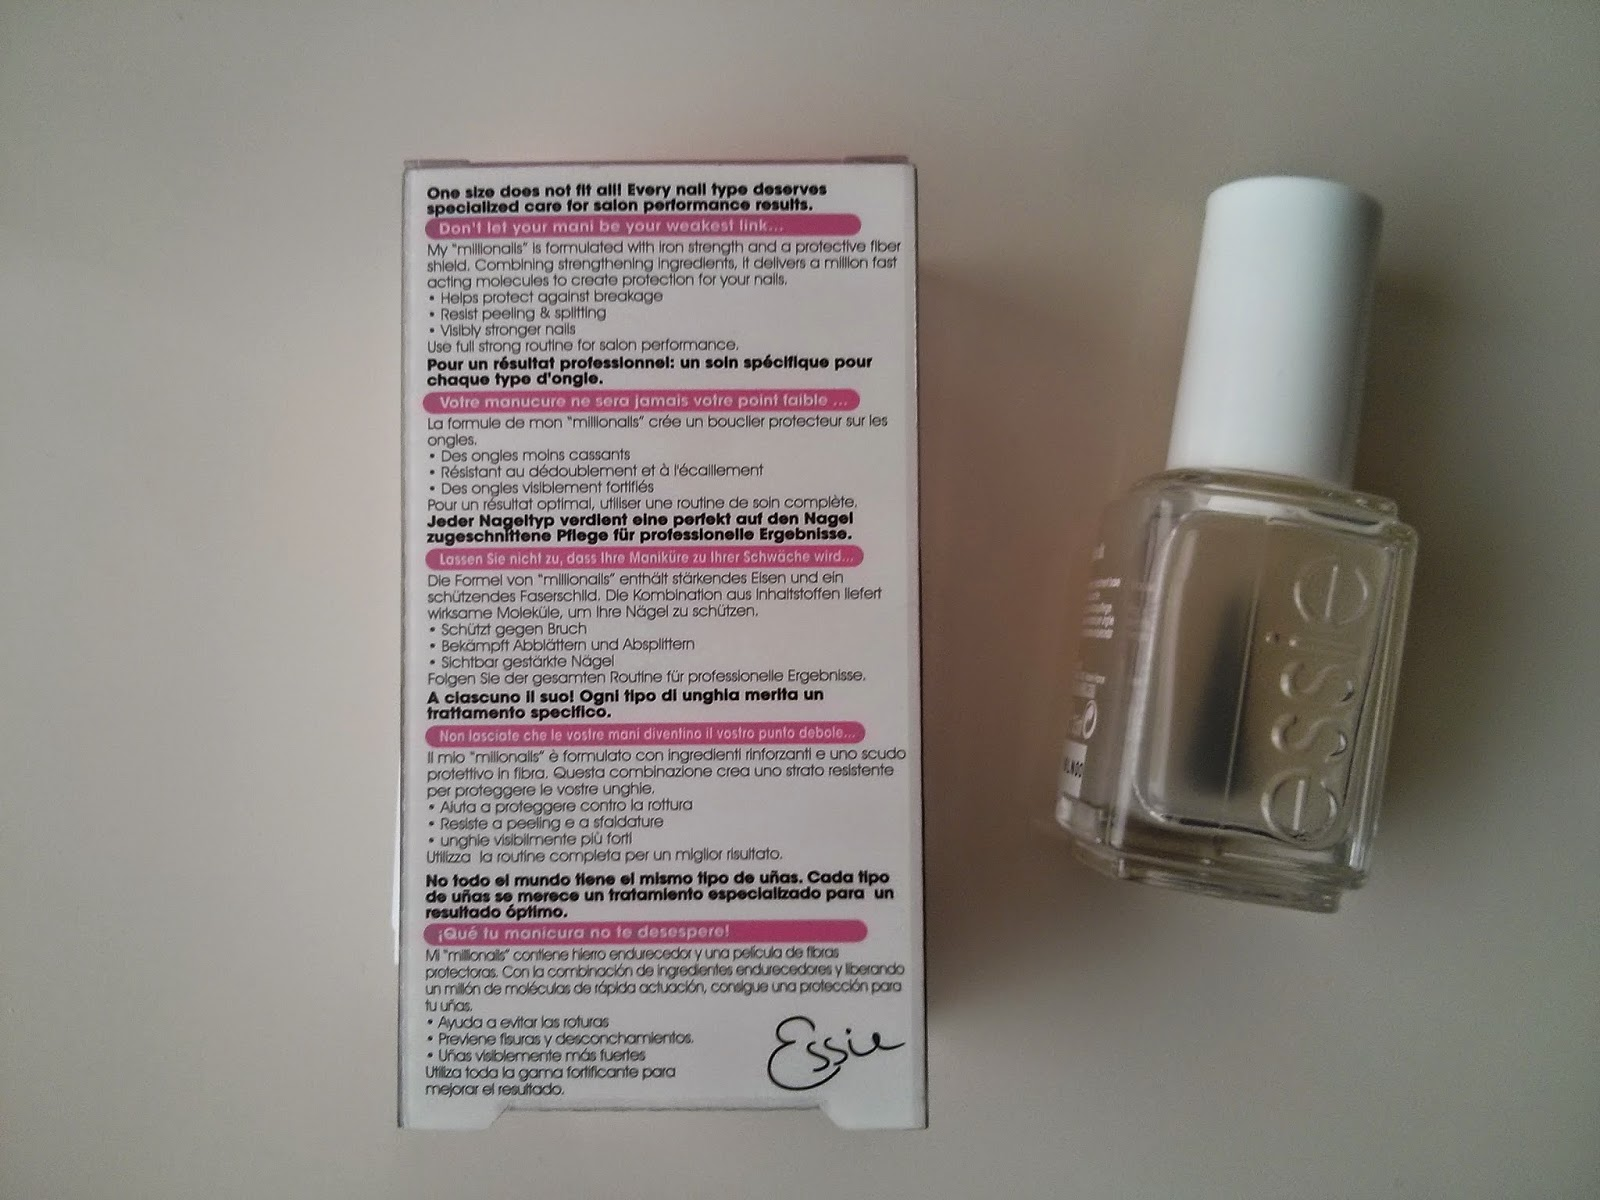 VipandSmart Beauty reviews Essie